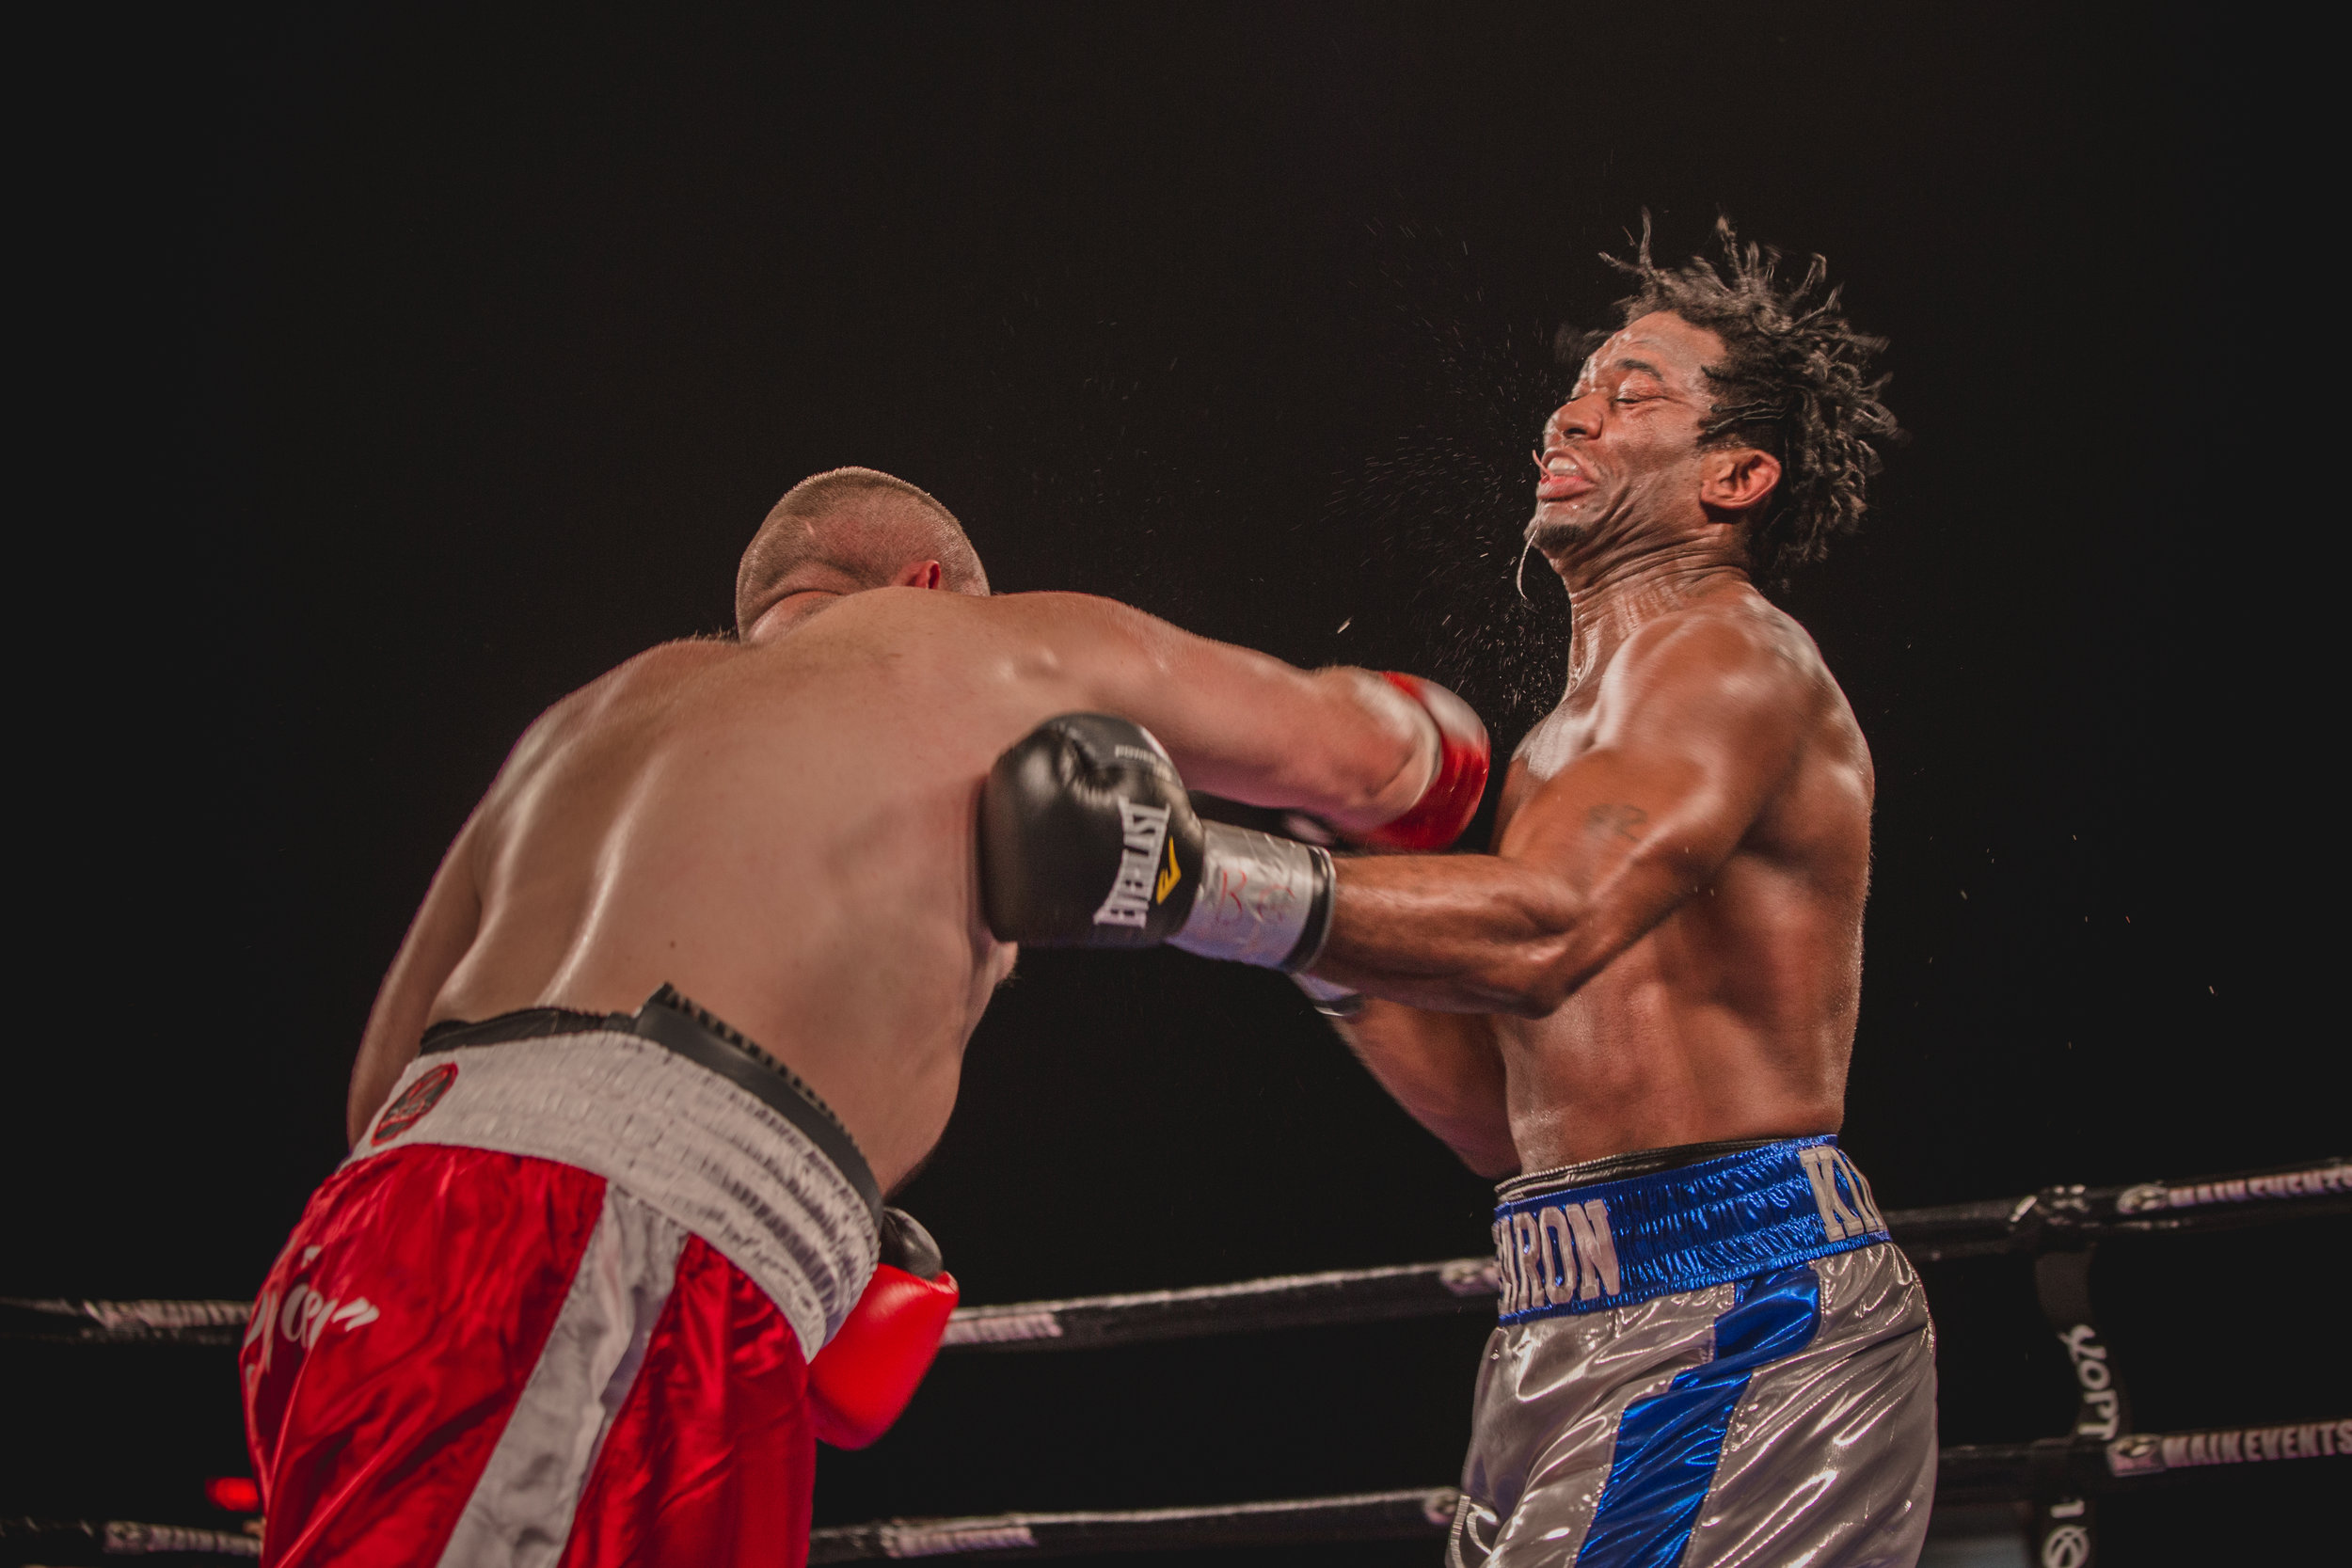 Adam Kownacki vs C.Ellis - photography by Sylwek Wosko (30).jpg